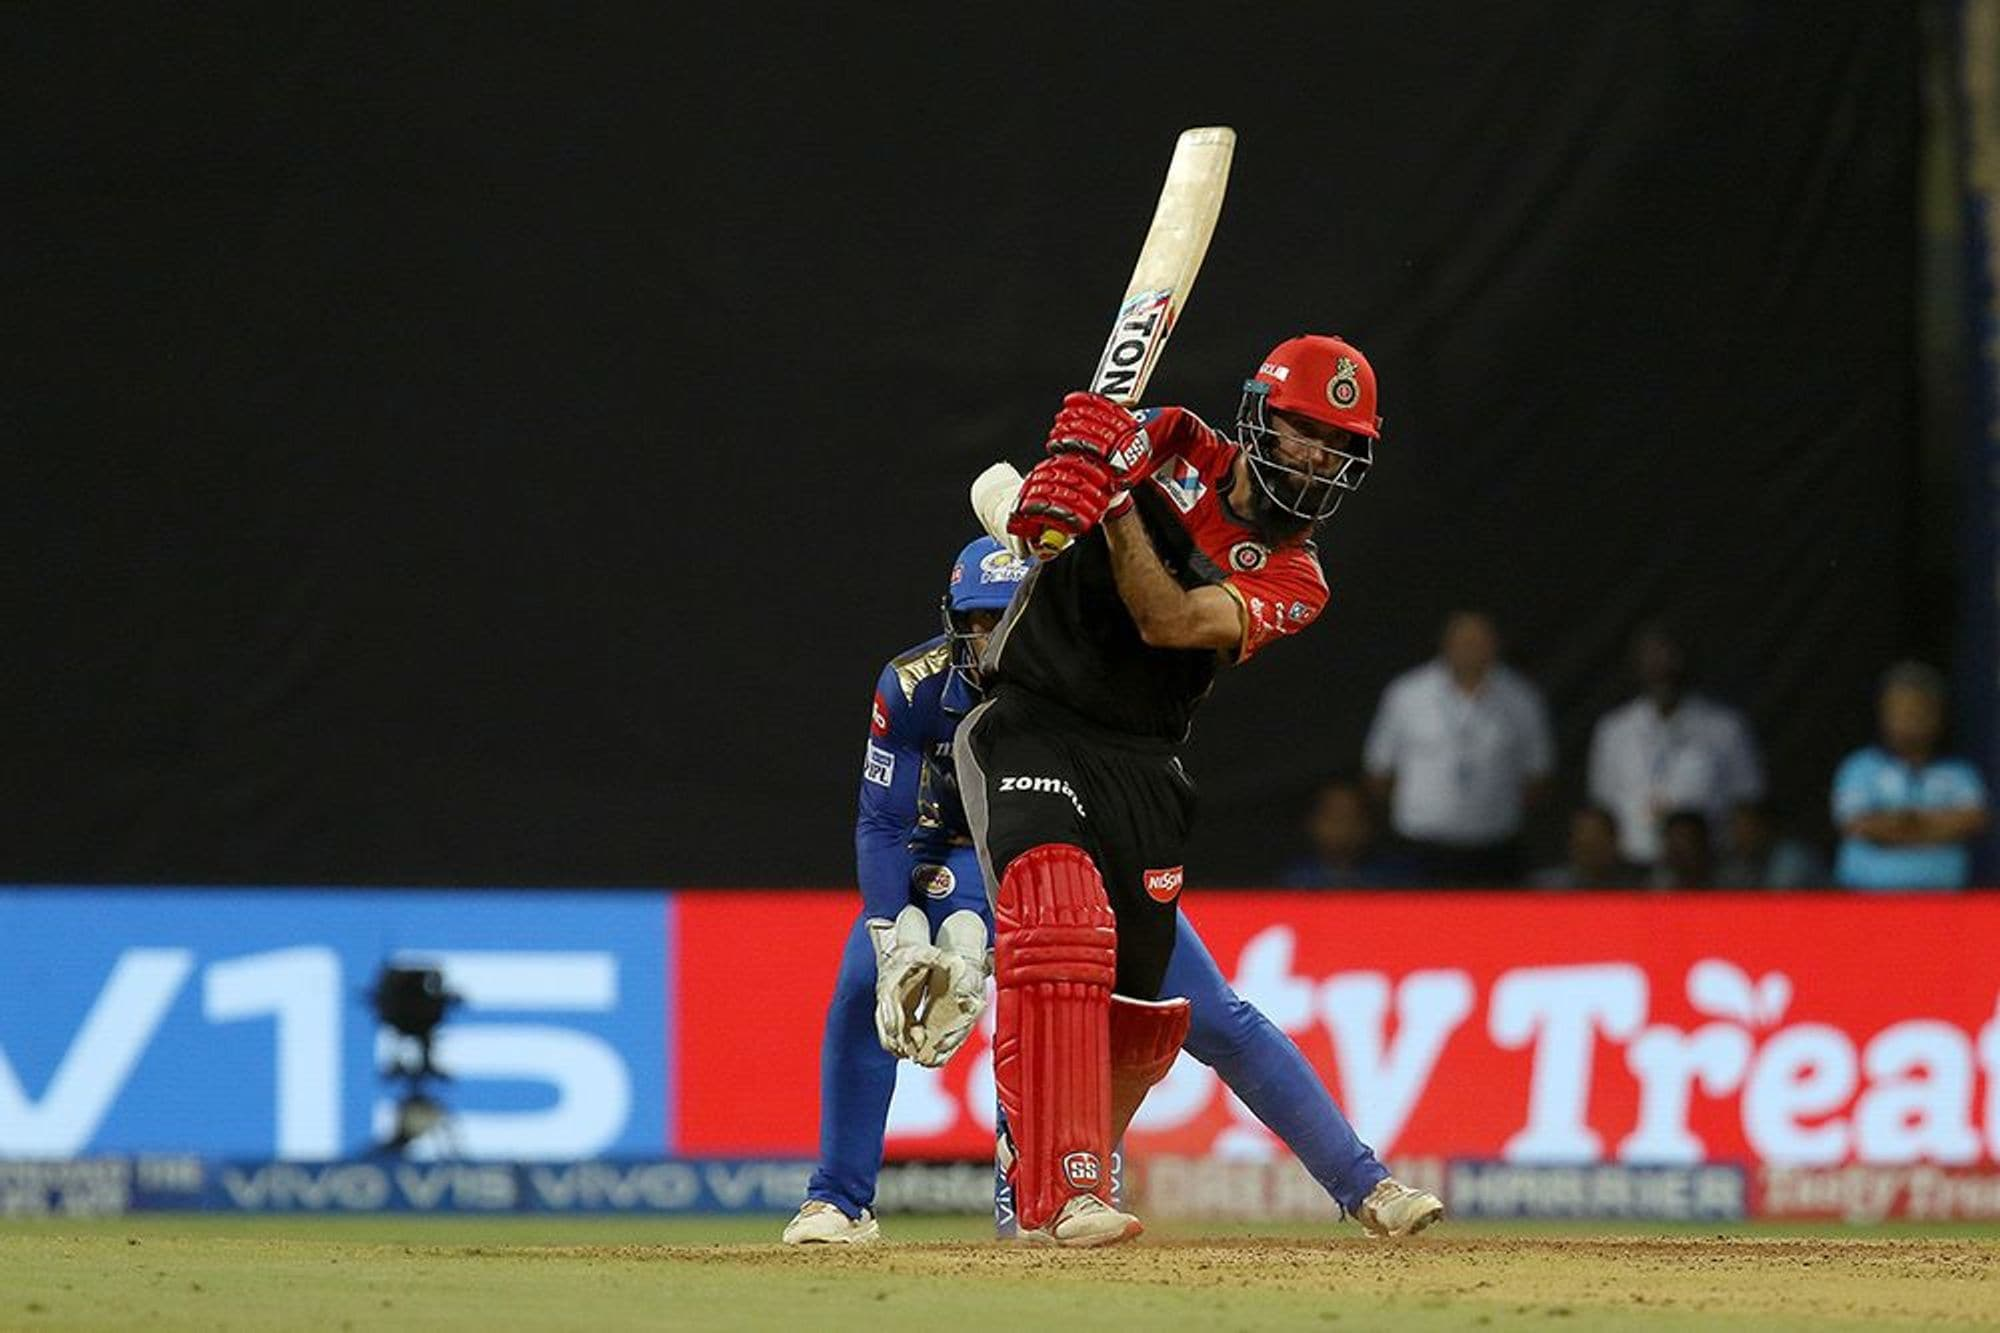 In Pics, Match 31, Mumbai Indians vs Royal Challengers Bangalore